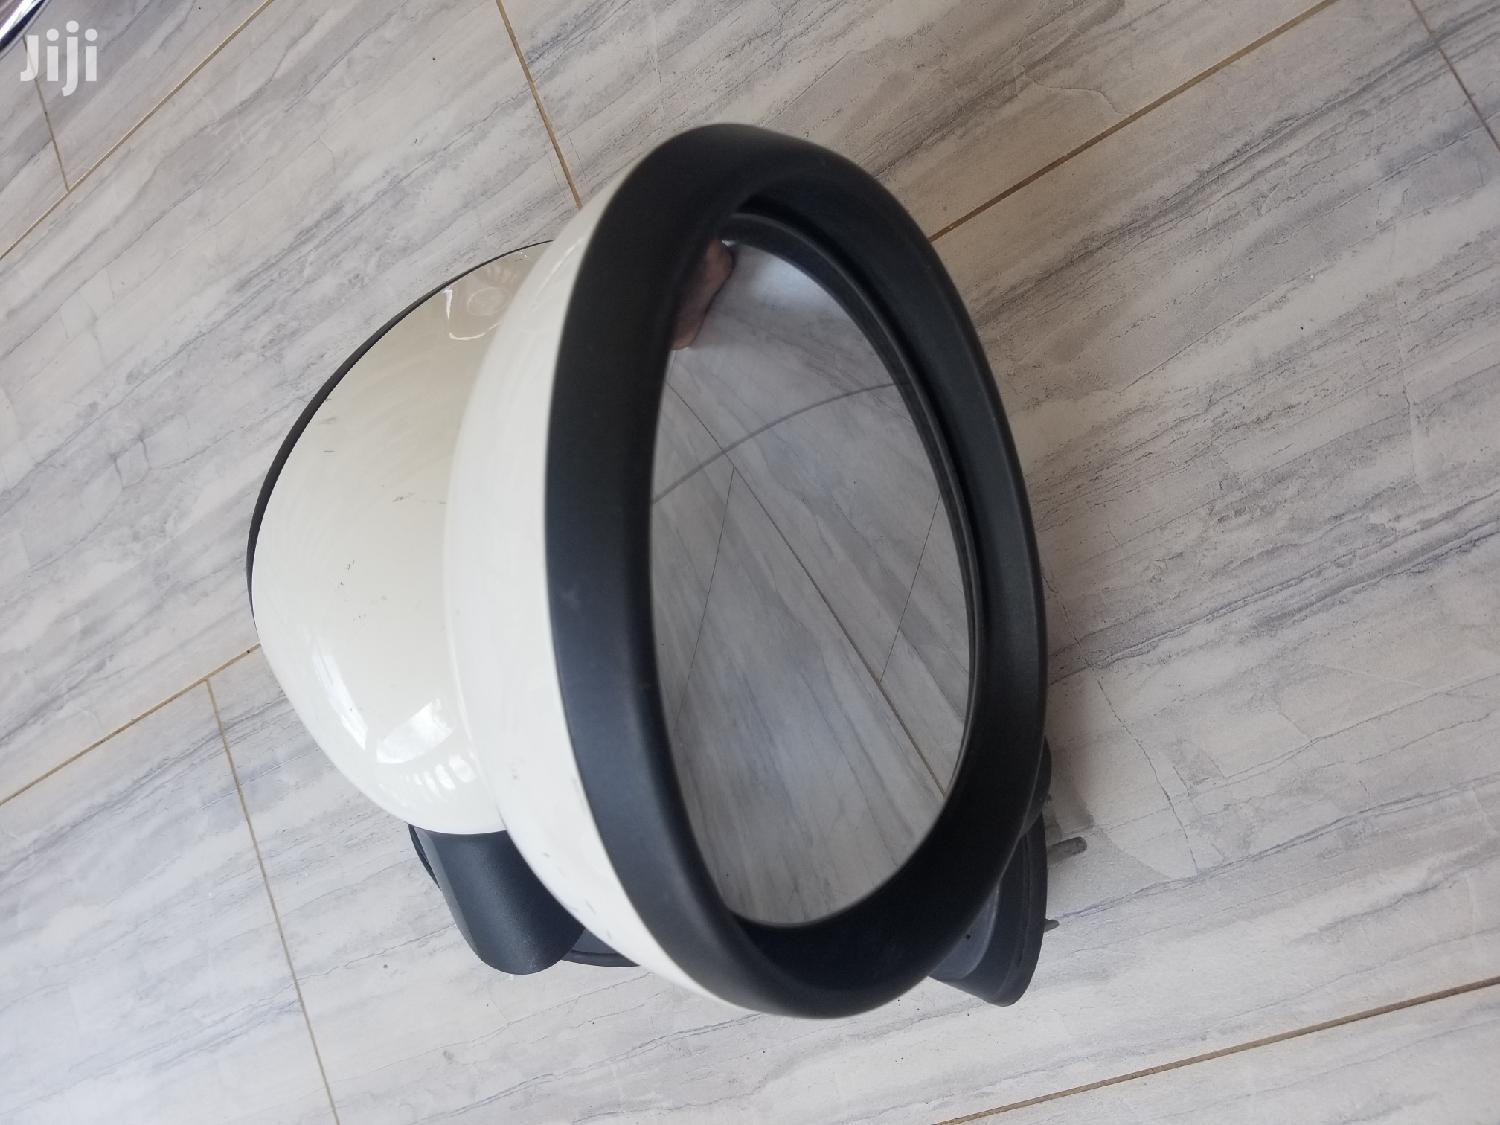 BMW Mini Cooper Side Mirrors On Sale | Vehicle Parts & Accessories for sale in Kampala, Central Region, Uganda